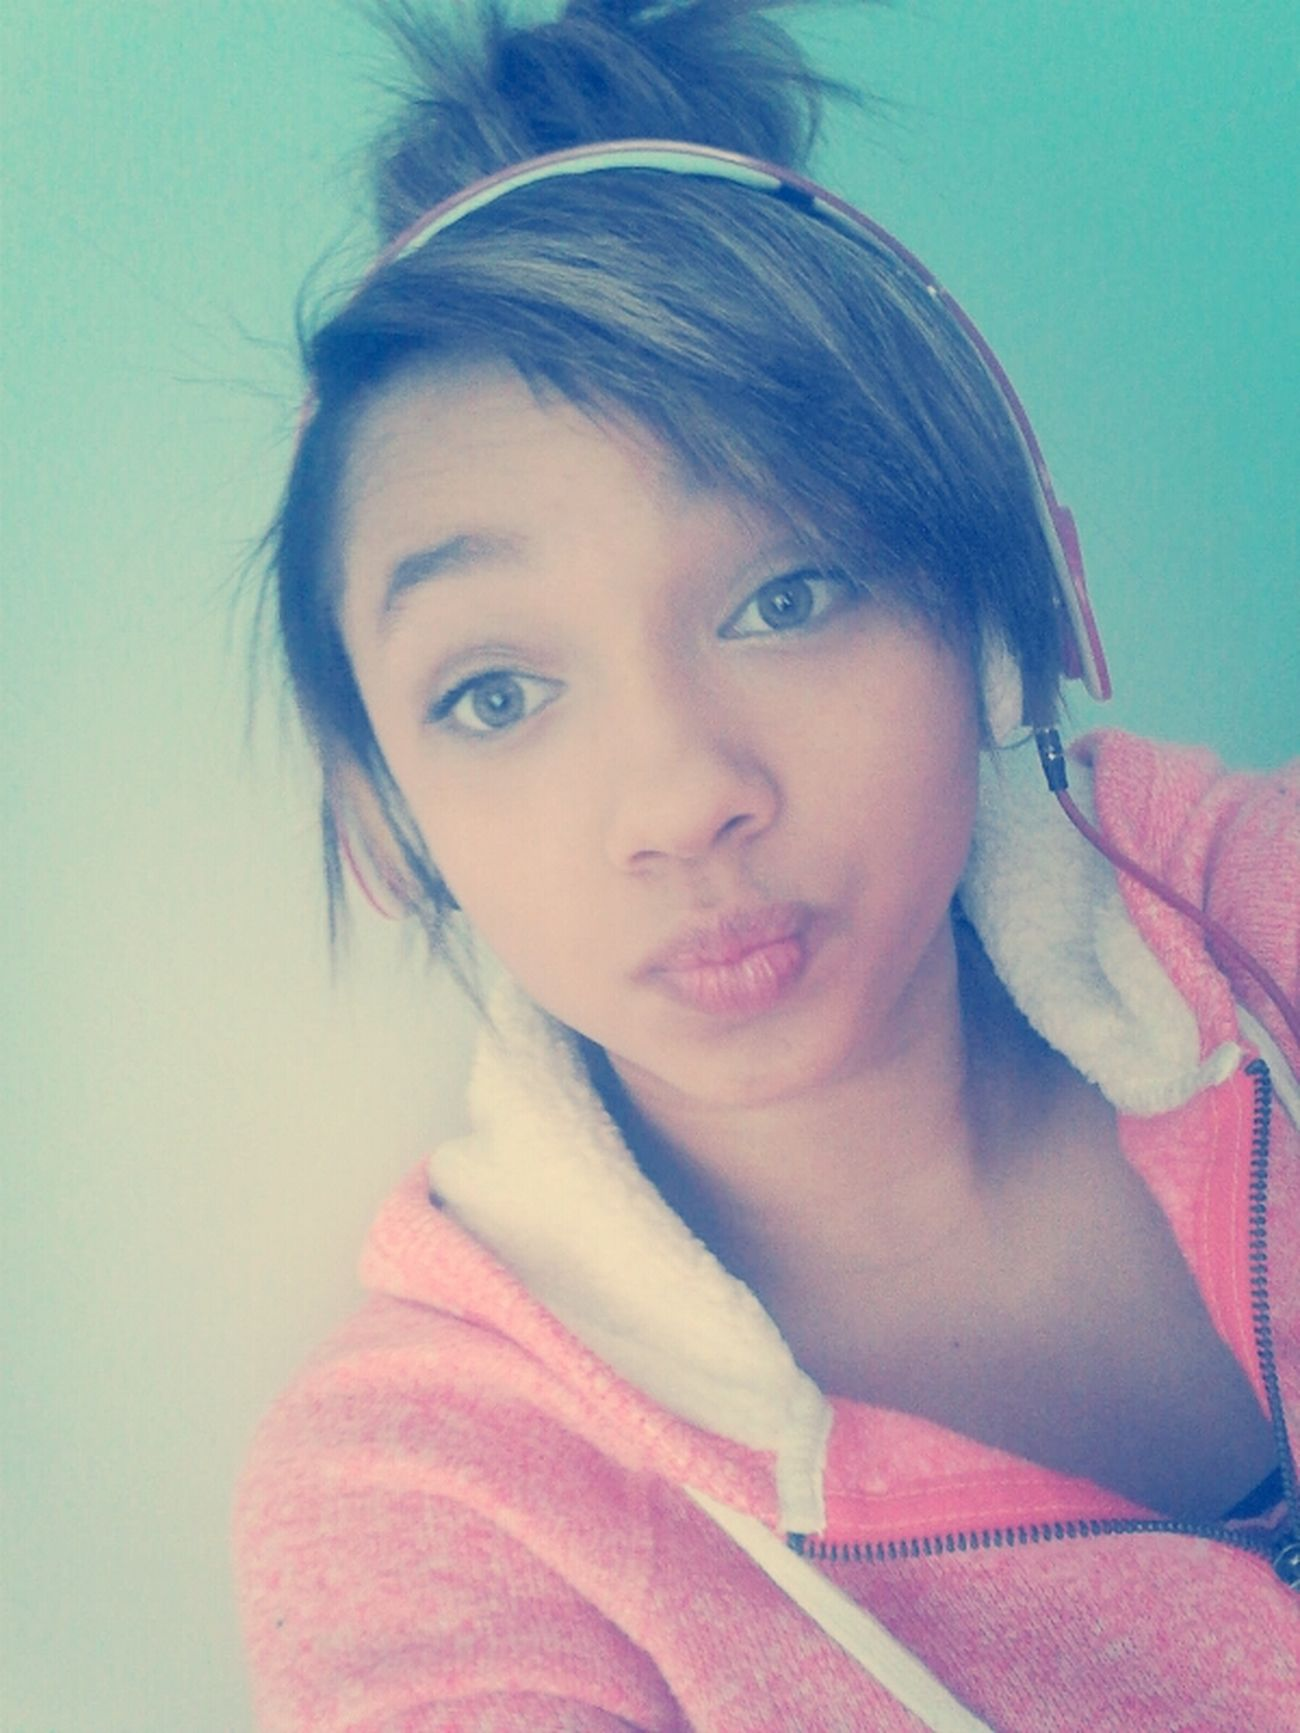 today(: #chillin #vibin